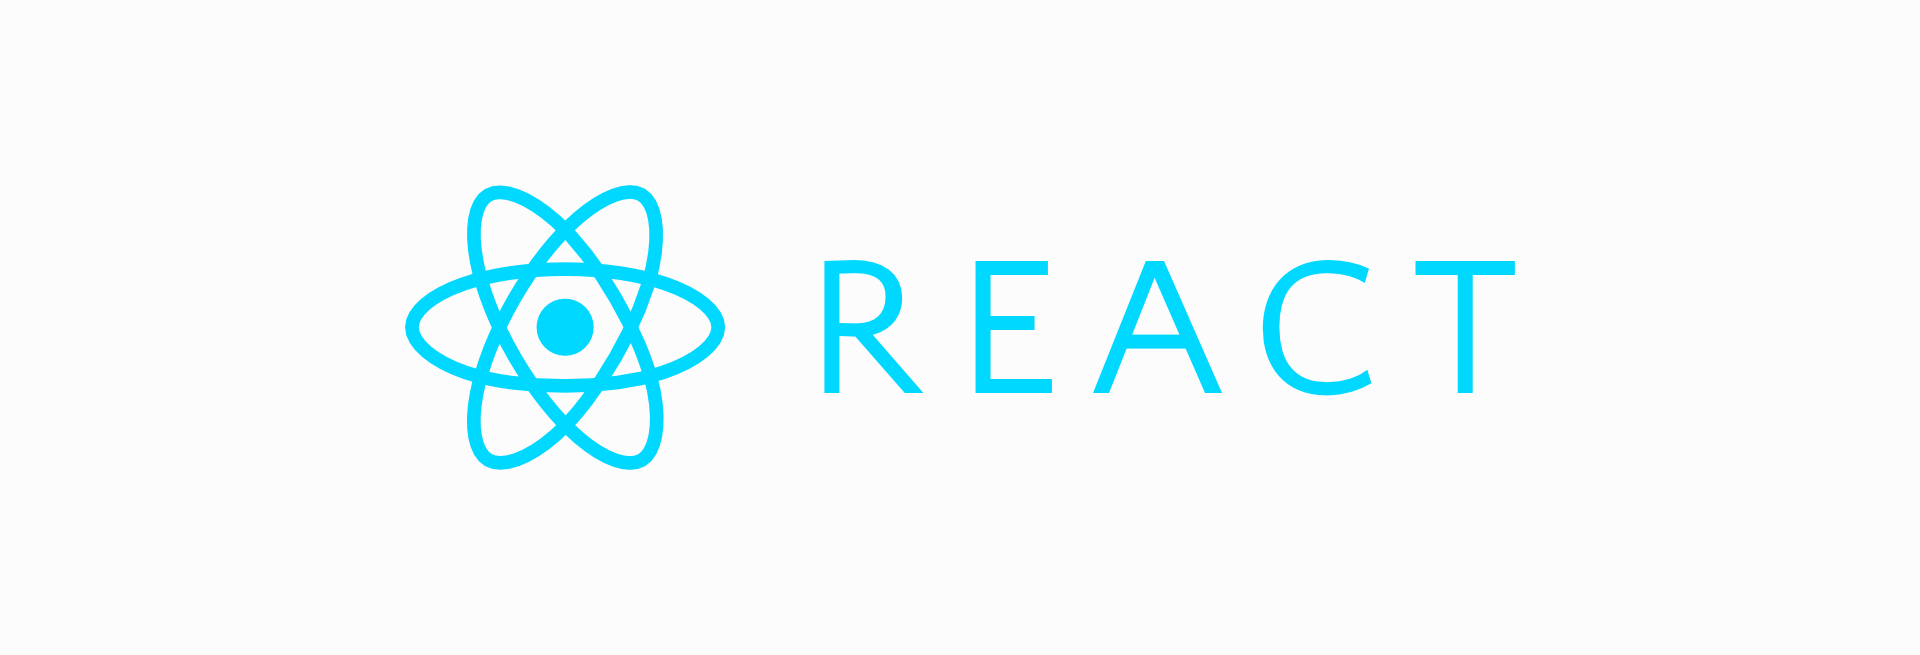 Top 10 React Development Companies in India - By